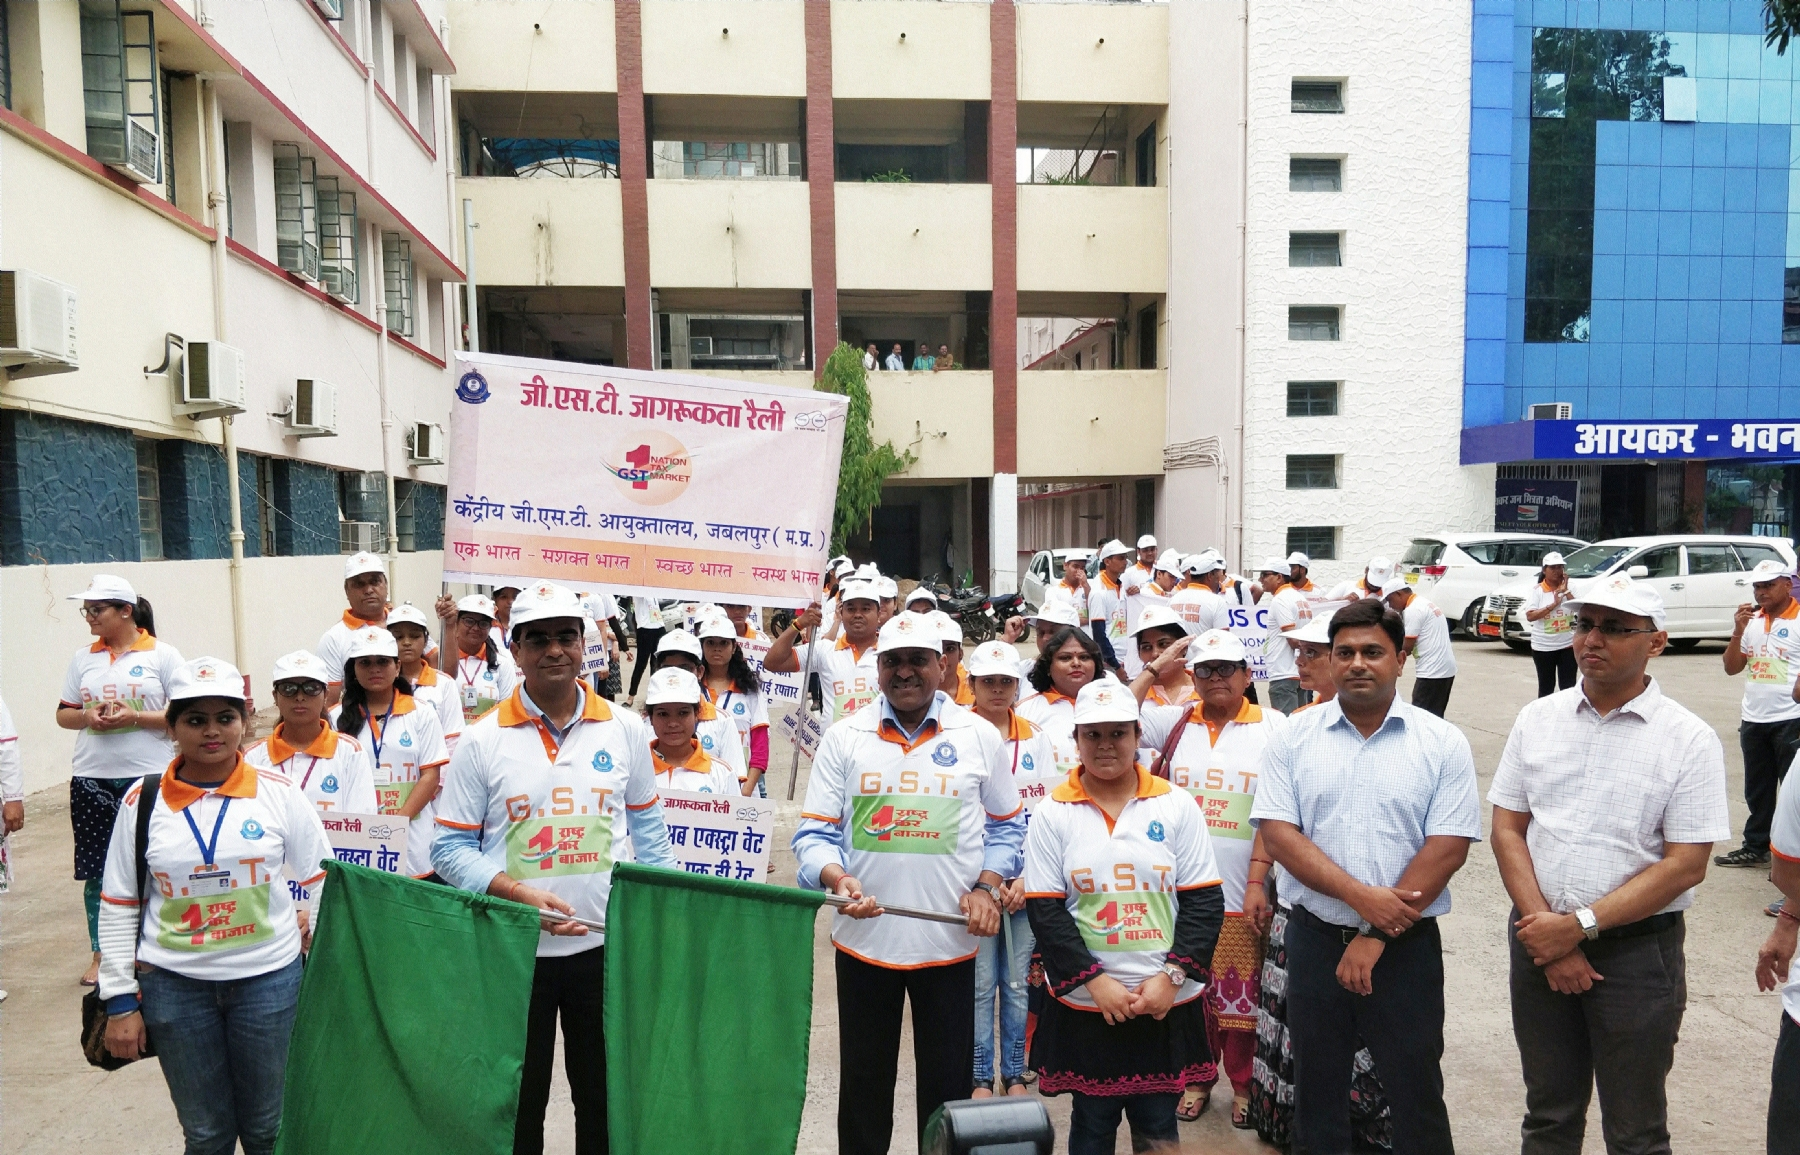 Mpl Commr flags off grand GST awareness rally